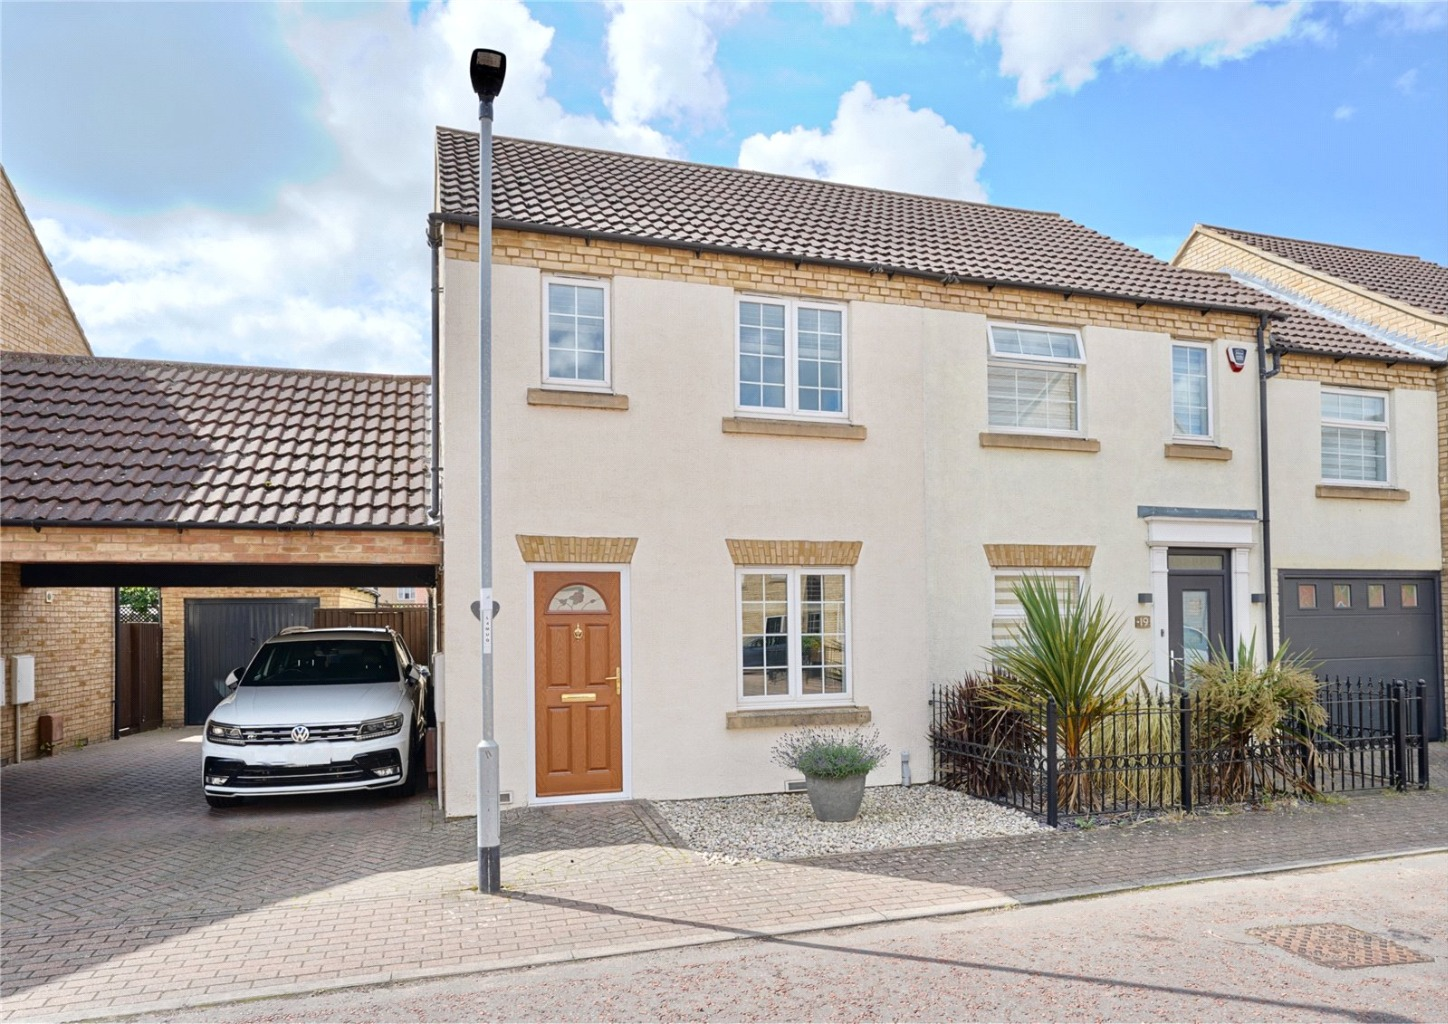 2 bed semi-detached house for sale in Ream Close, St. Neots, PE19